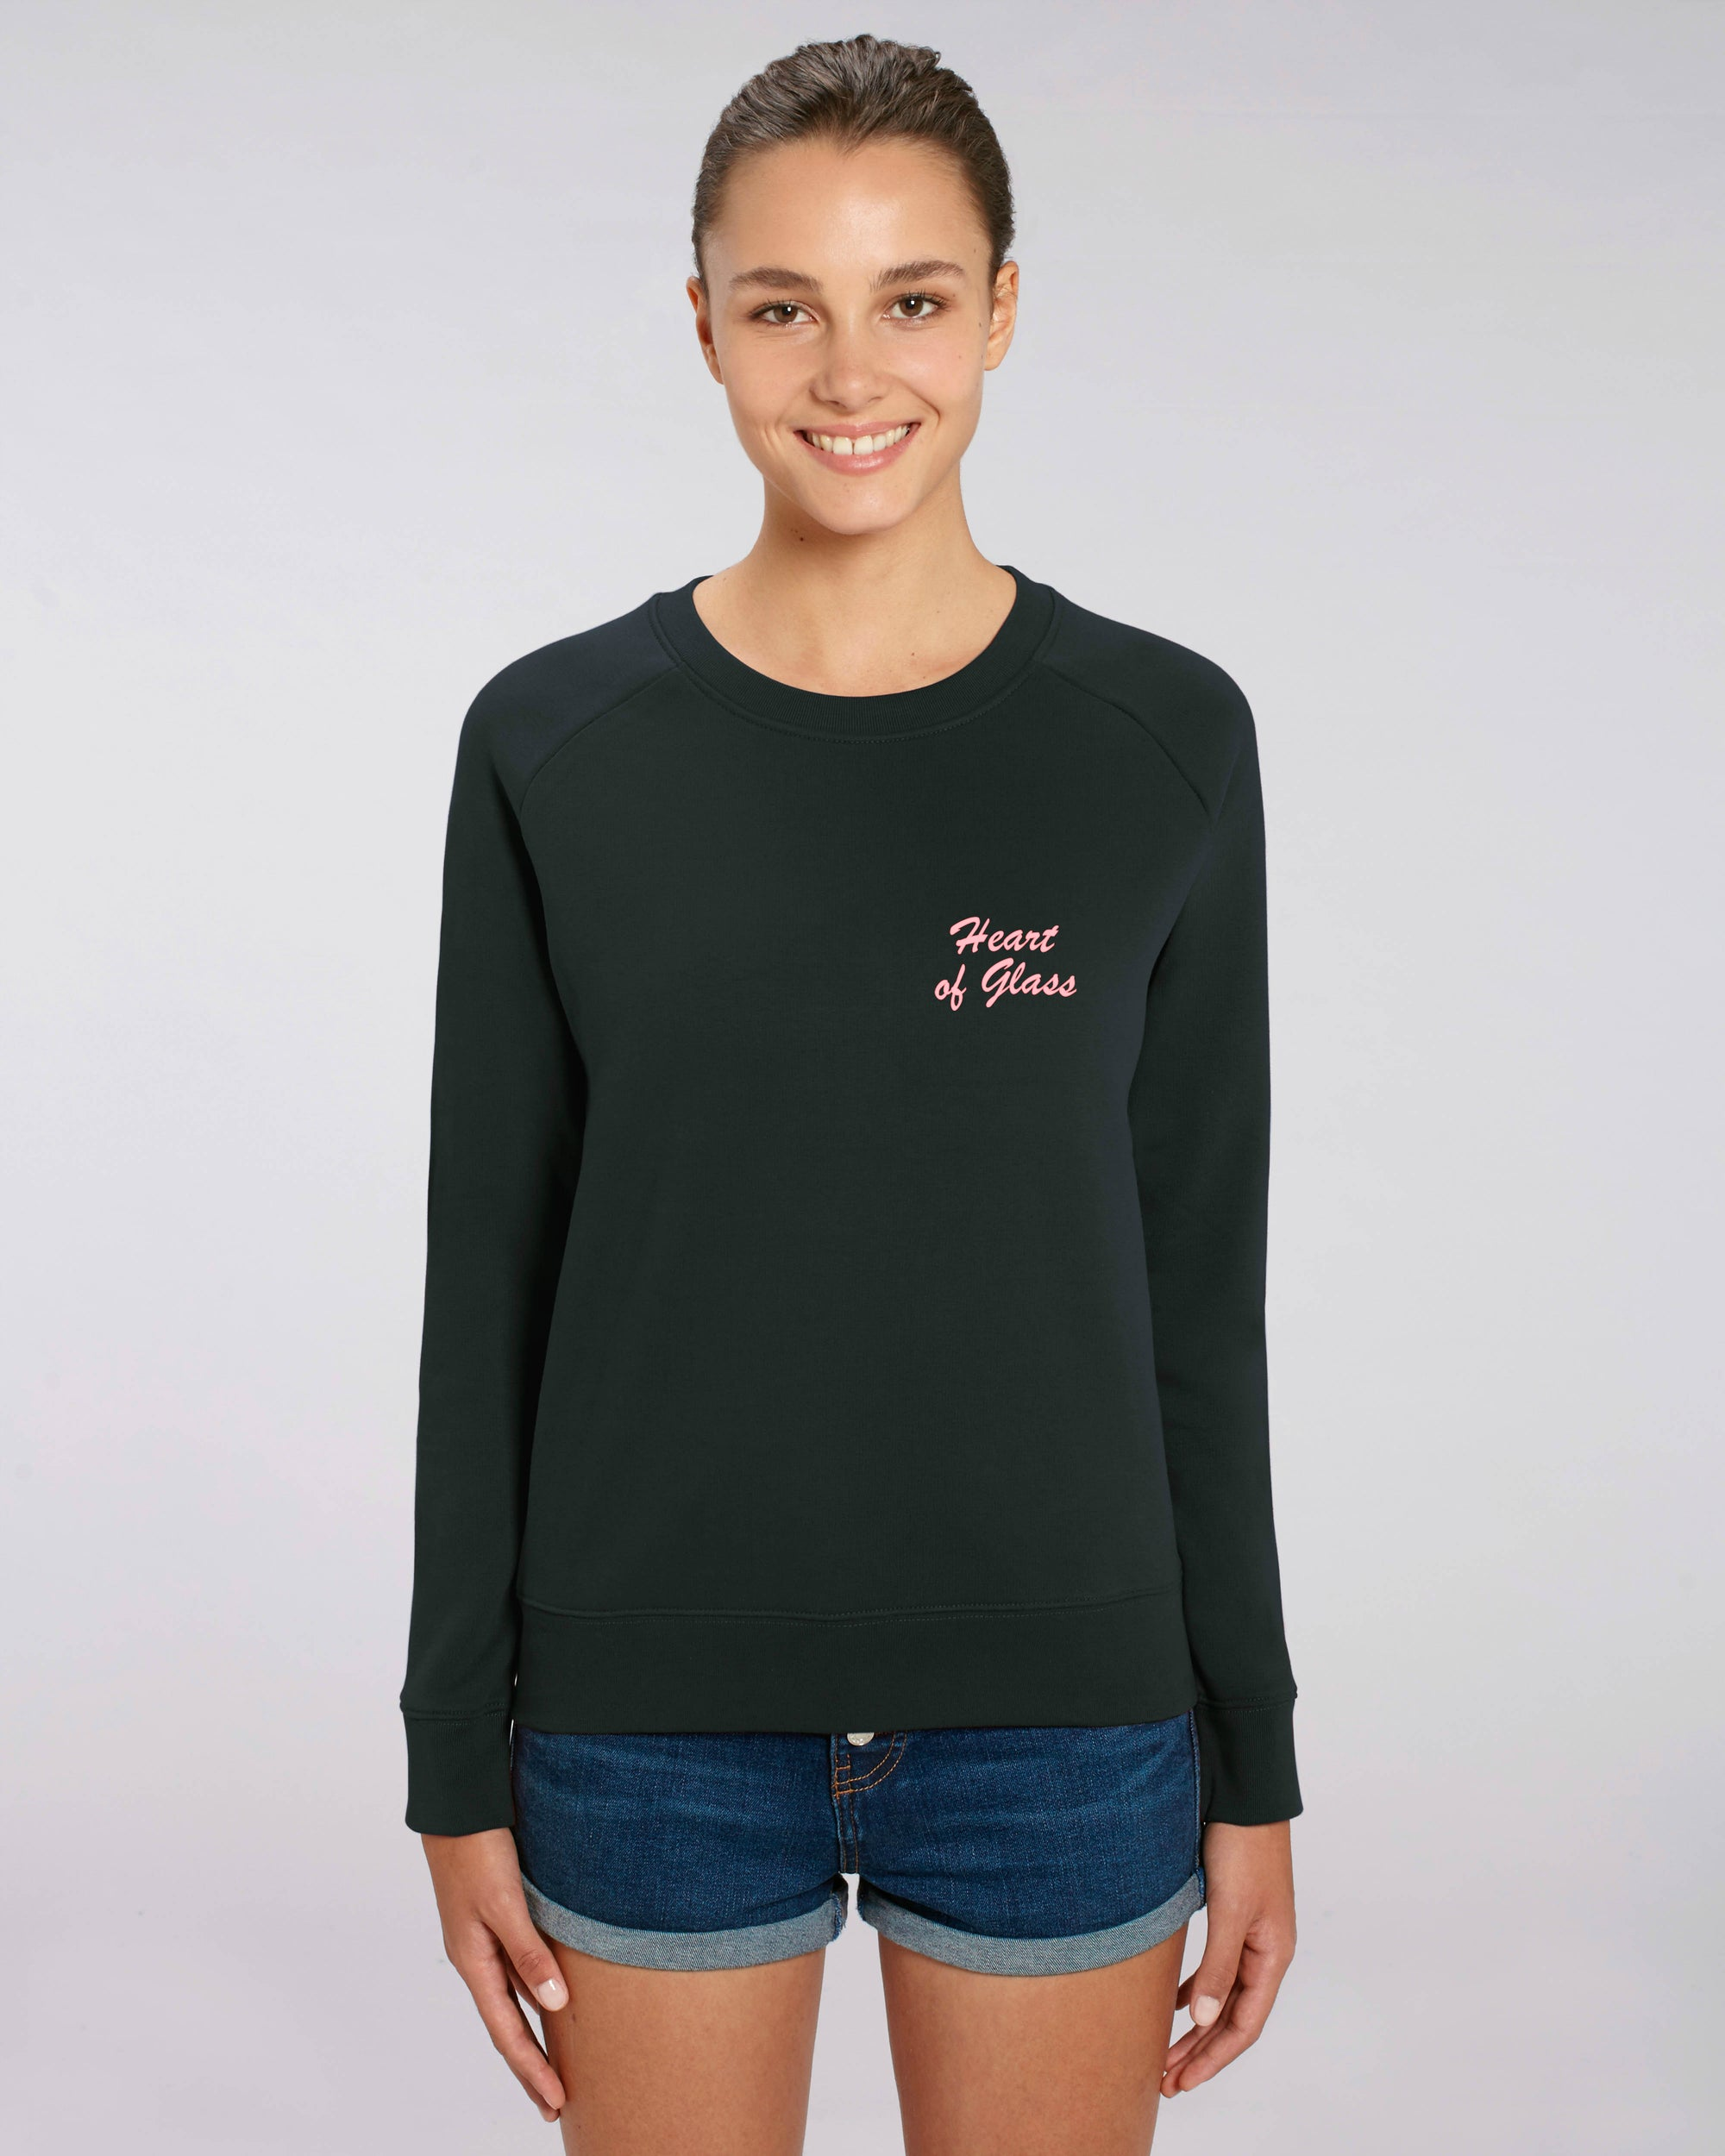 'HEART OF GLASS' LEFT CHEST EMBROIDERED WOMEN'S ORGANIC COTTON SWEATSHIRT